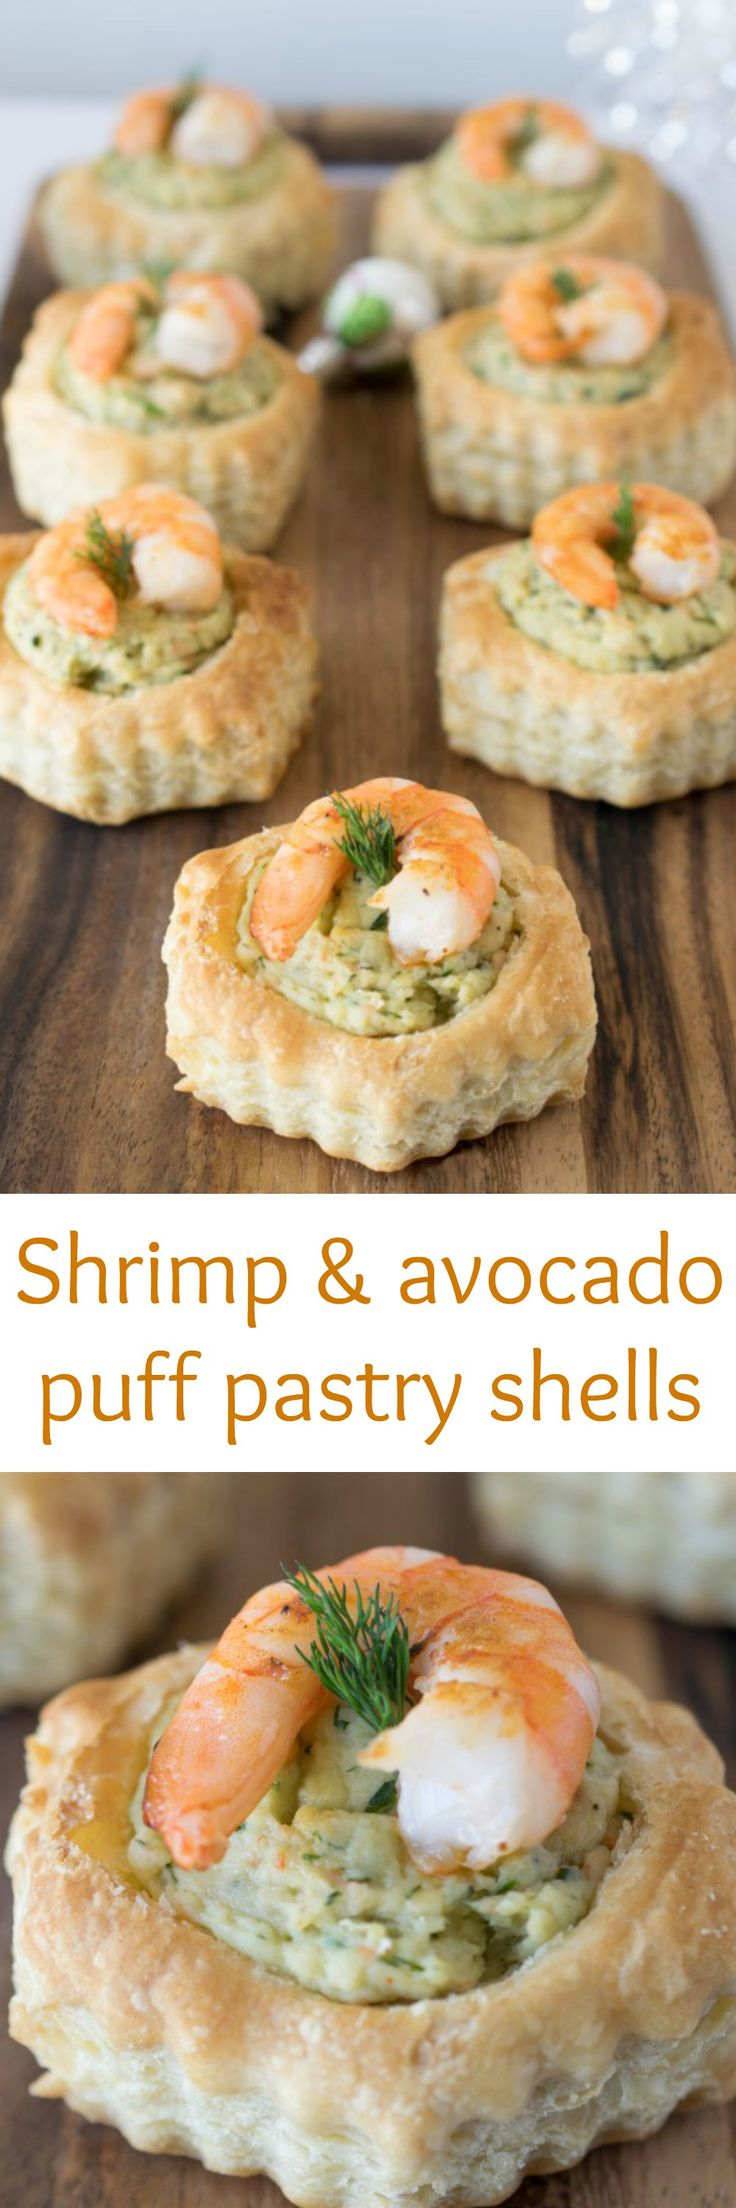 Shrimp & avocado puff pastry shells are really easy to make. Perfect for…